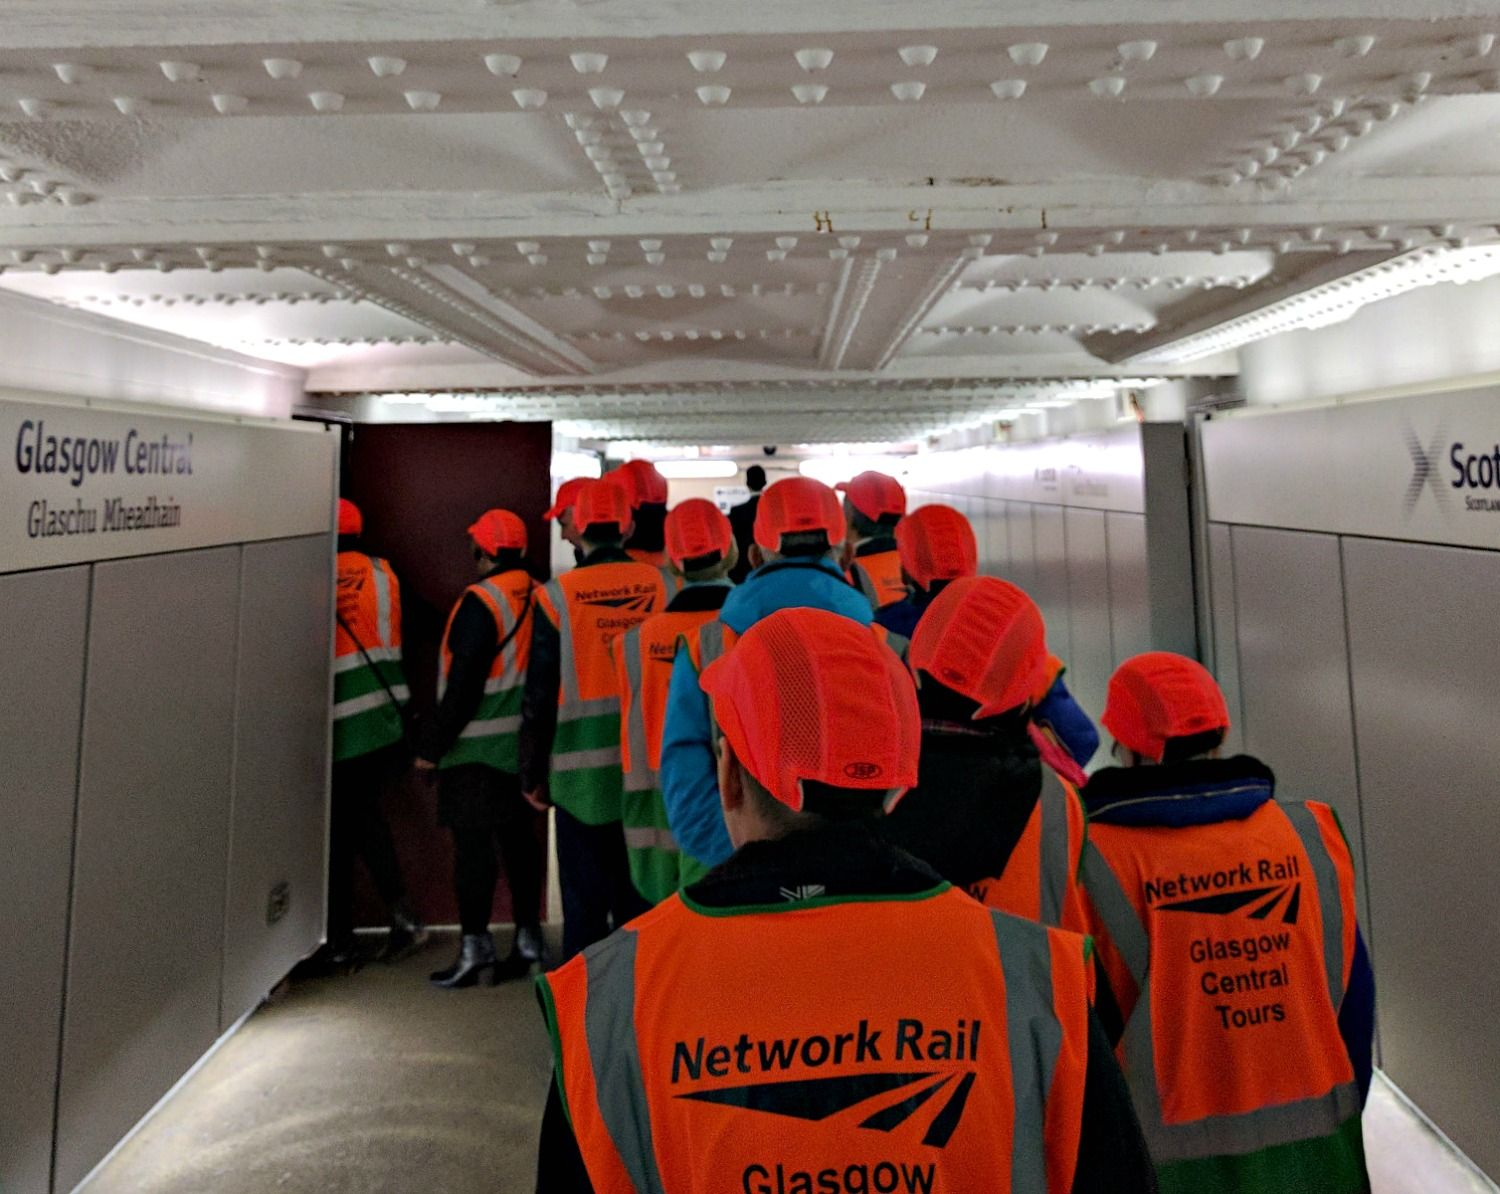 A door is opened - and we disappear into the depths of Glasgow Central Station on our guided tour. And we feel really important in our high-viz jackets.